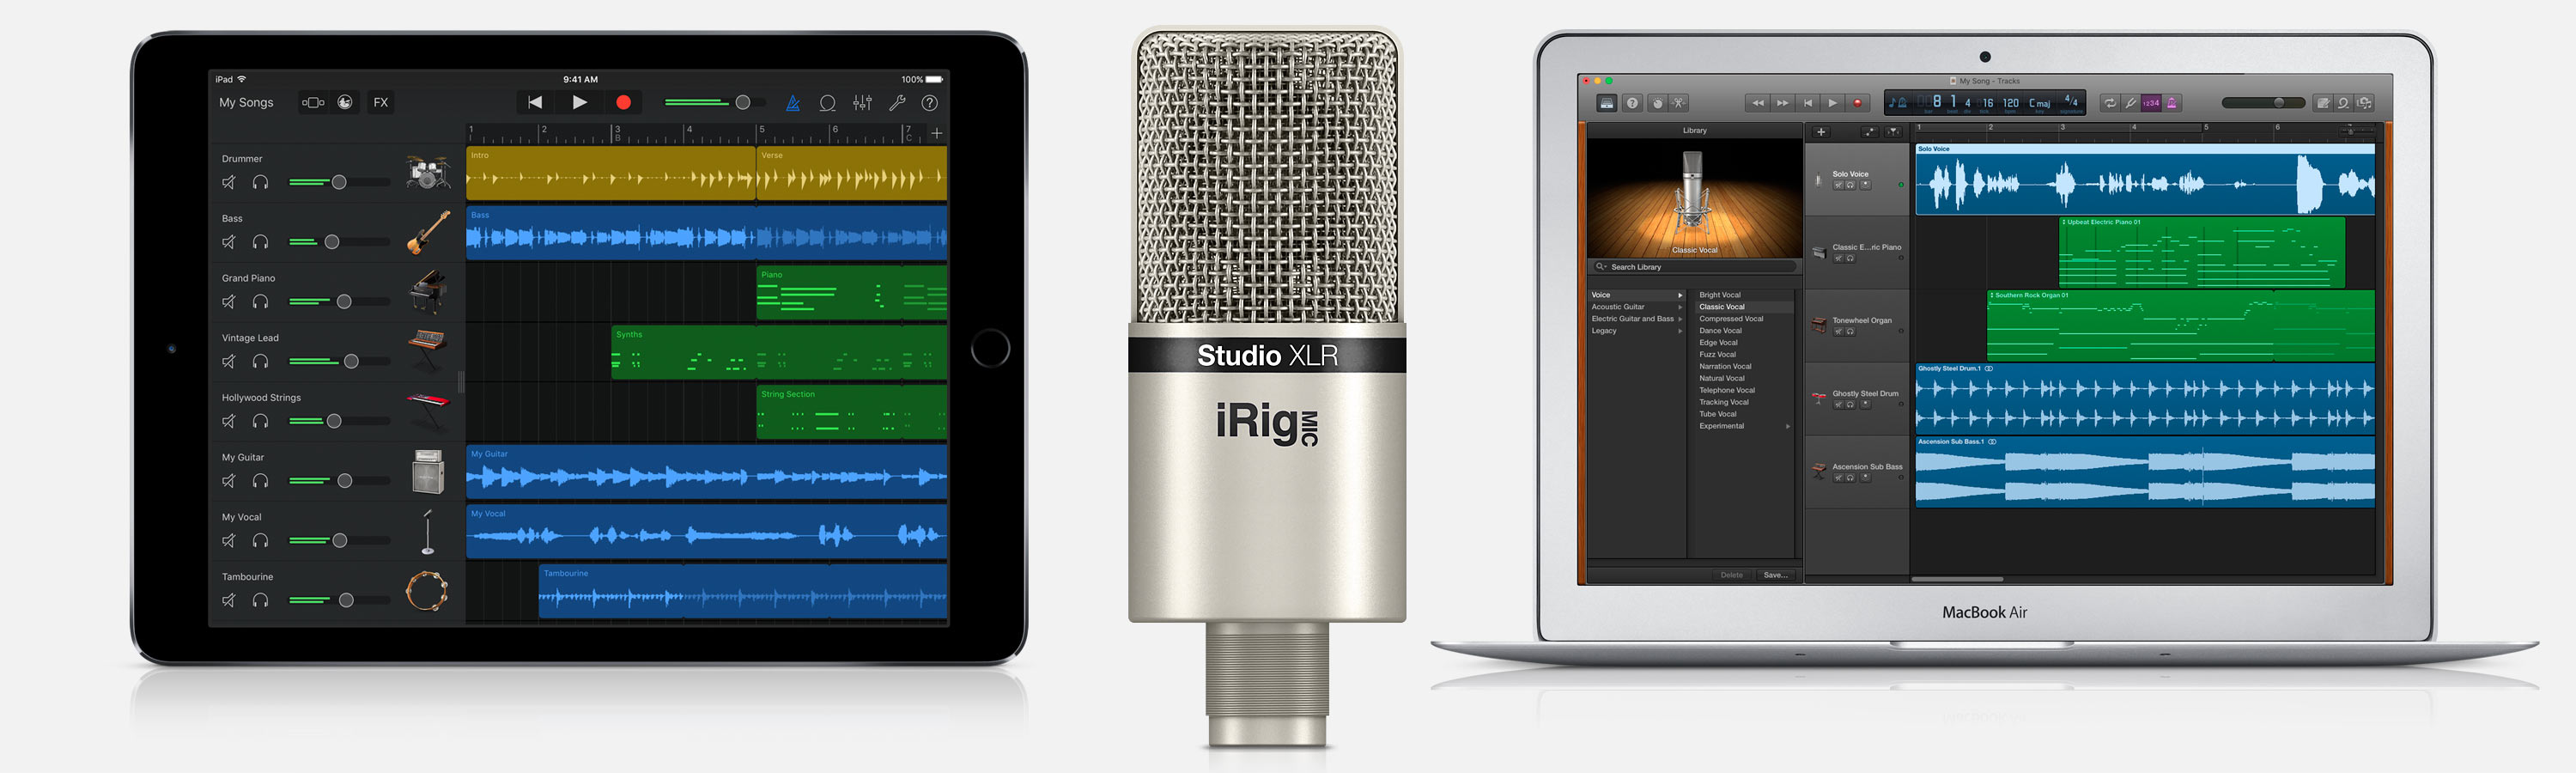 iRig Mic Studio XLR iPad Mac